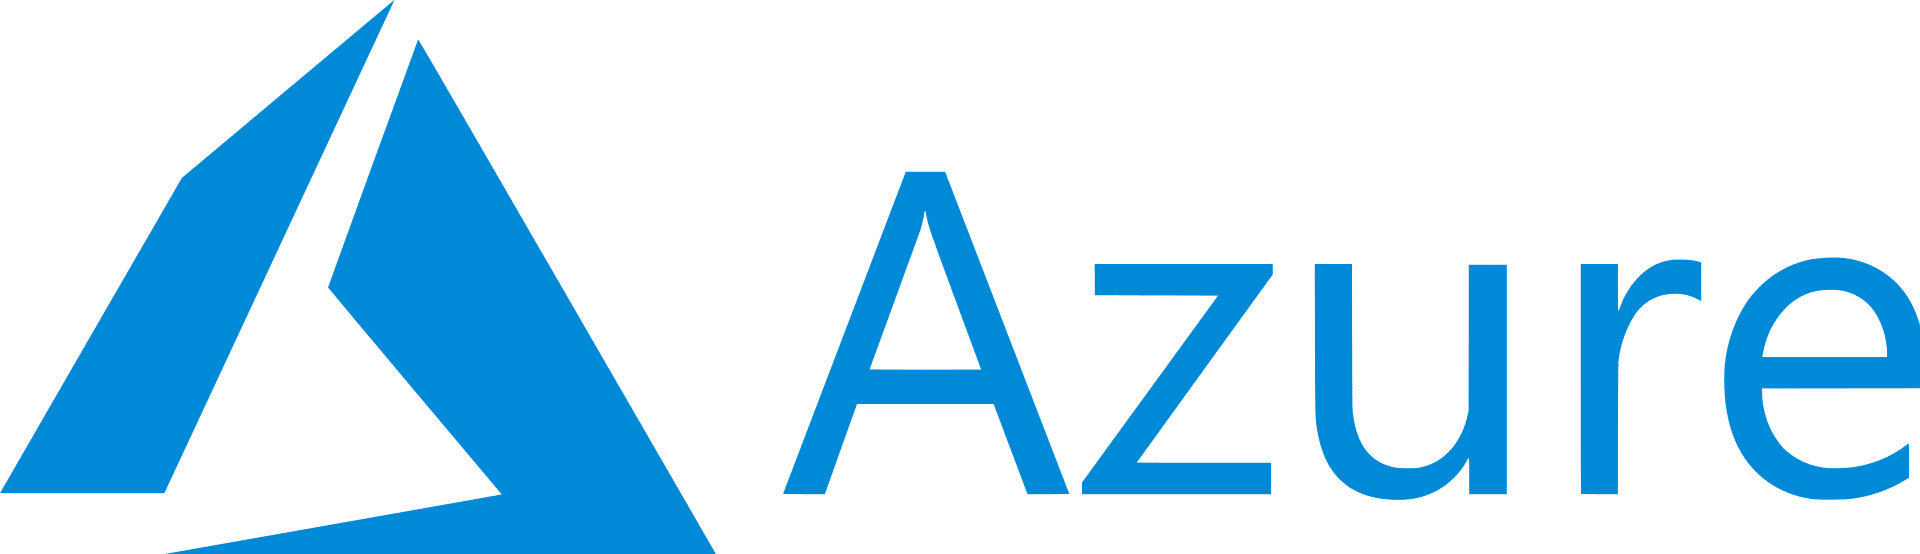 Microsoft Azure - Application Development Software : SaaSworthy.com